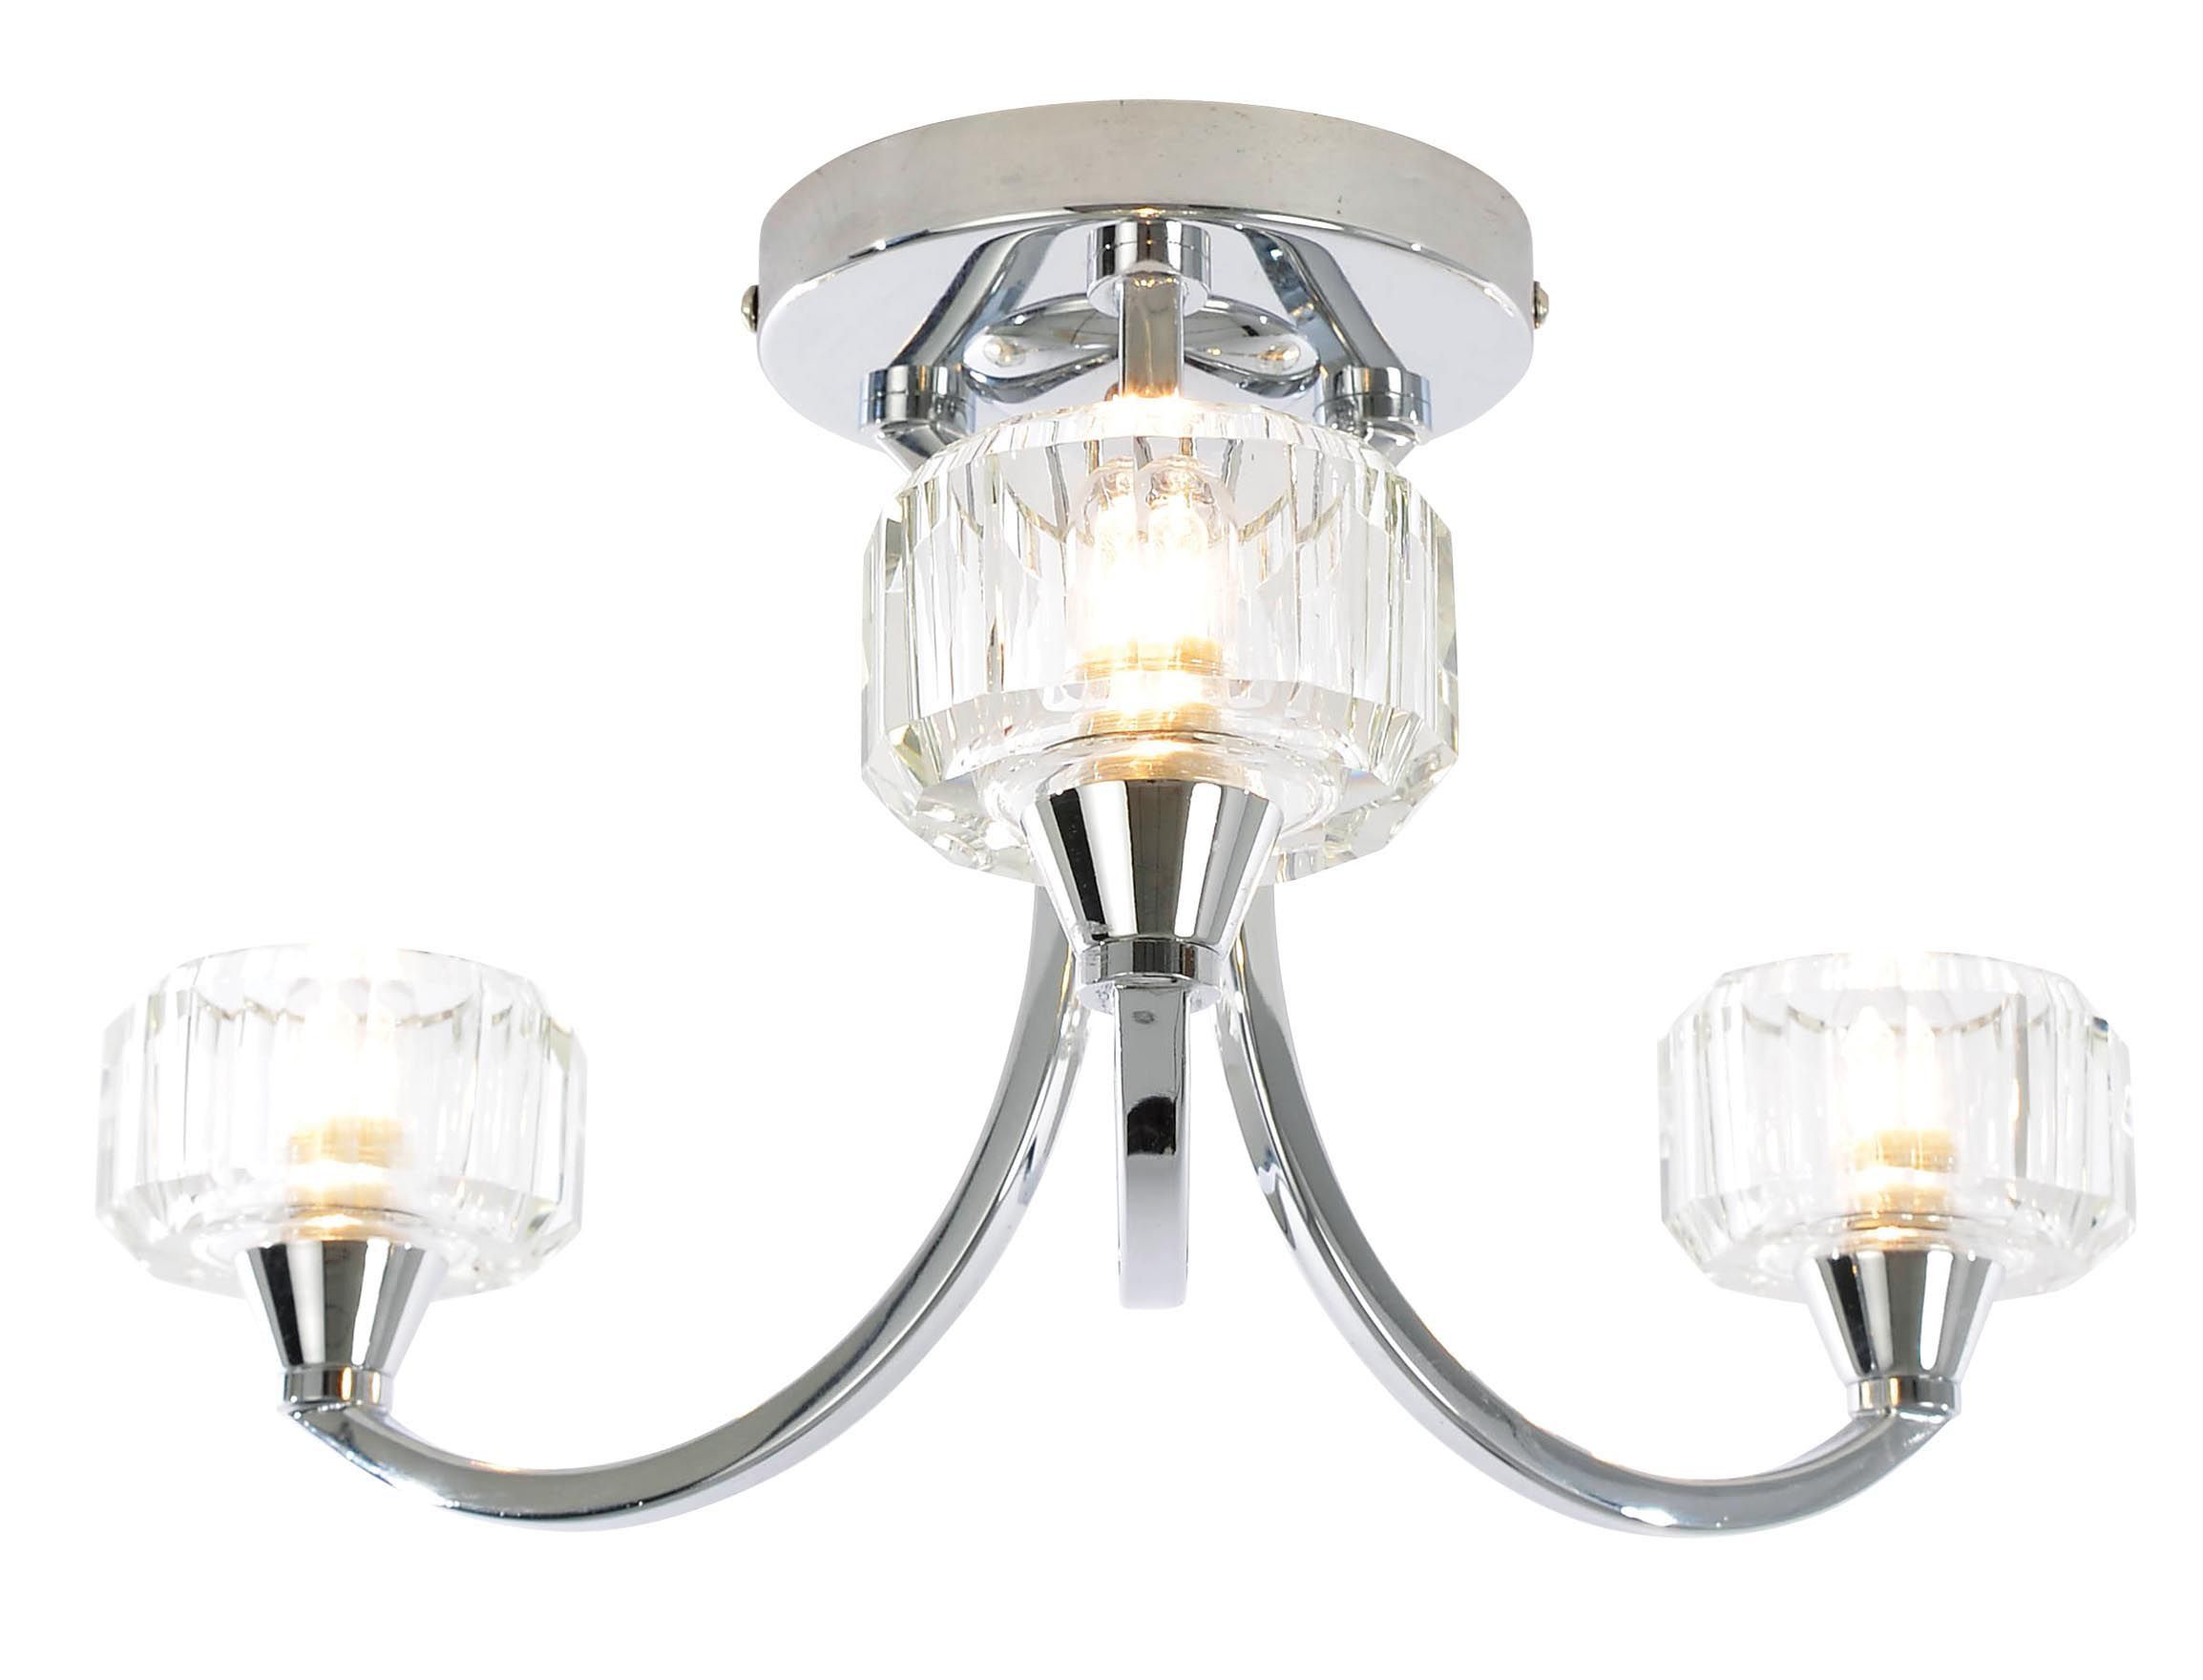 Orara Clear Chrome Effect 3 Lamp Bathroom Ceiling Light ...